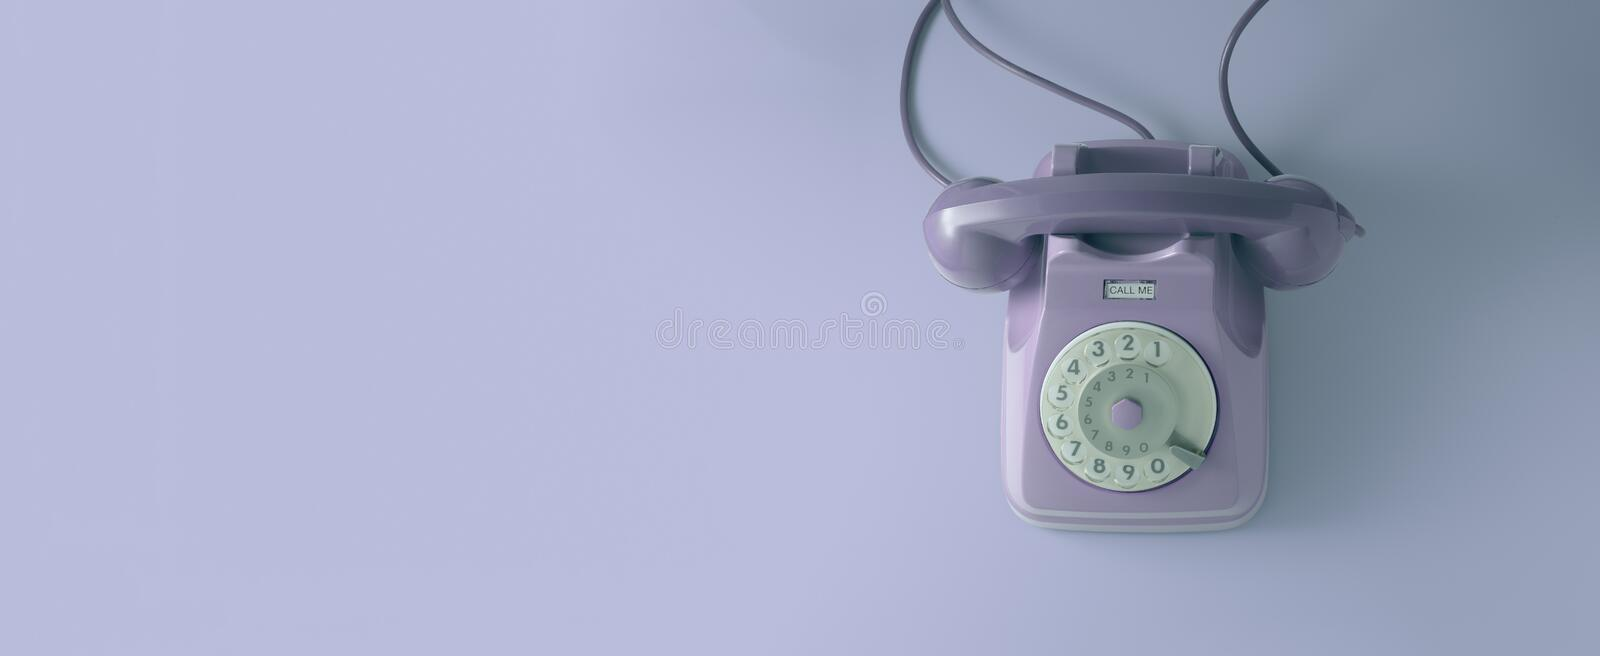 A vintage dial telephone with violet background. A violet vintage dial telephone with violet background royalty free stock image